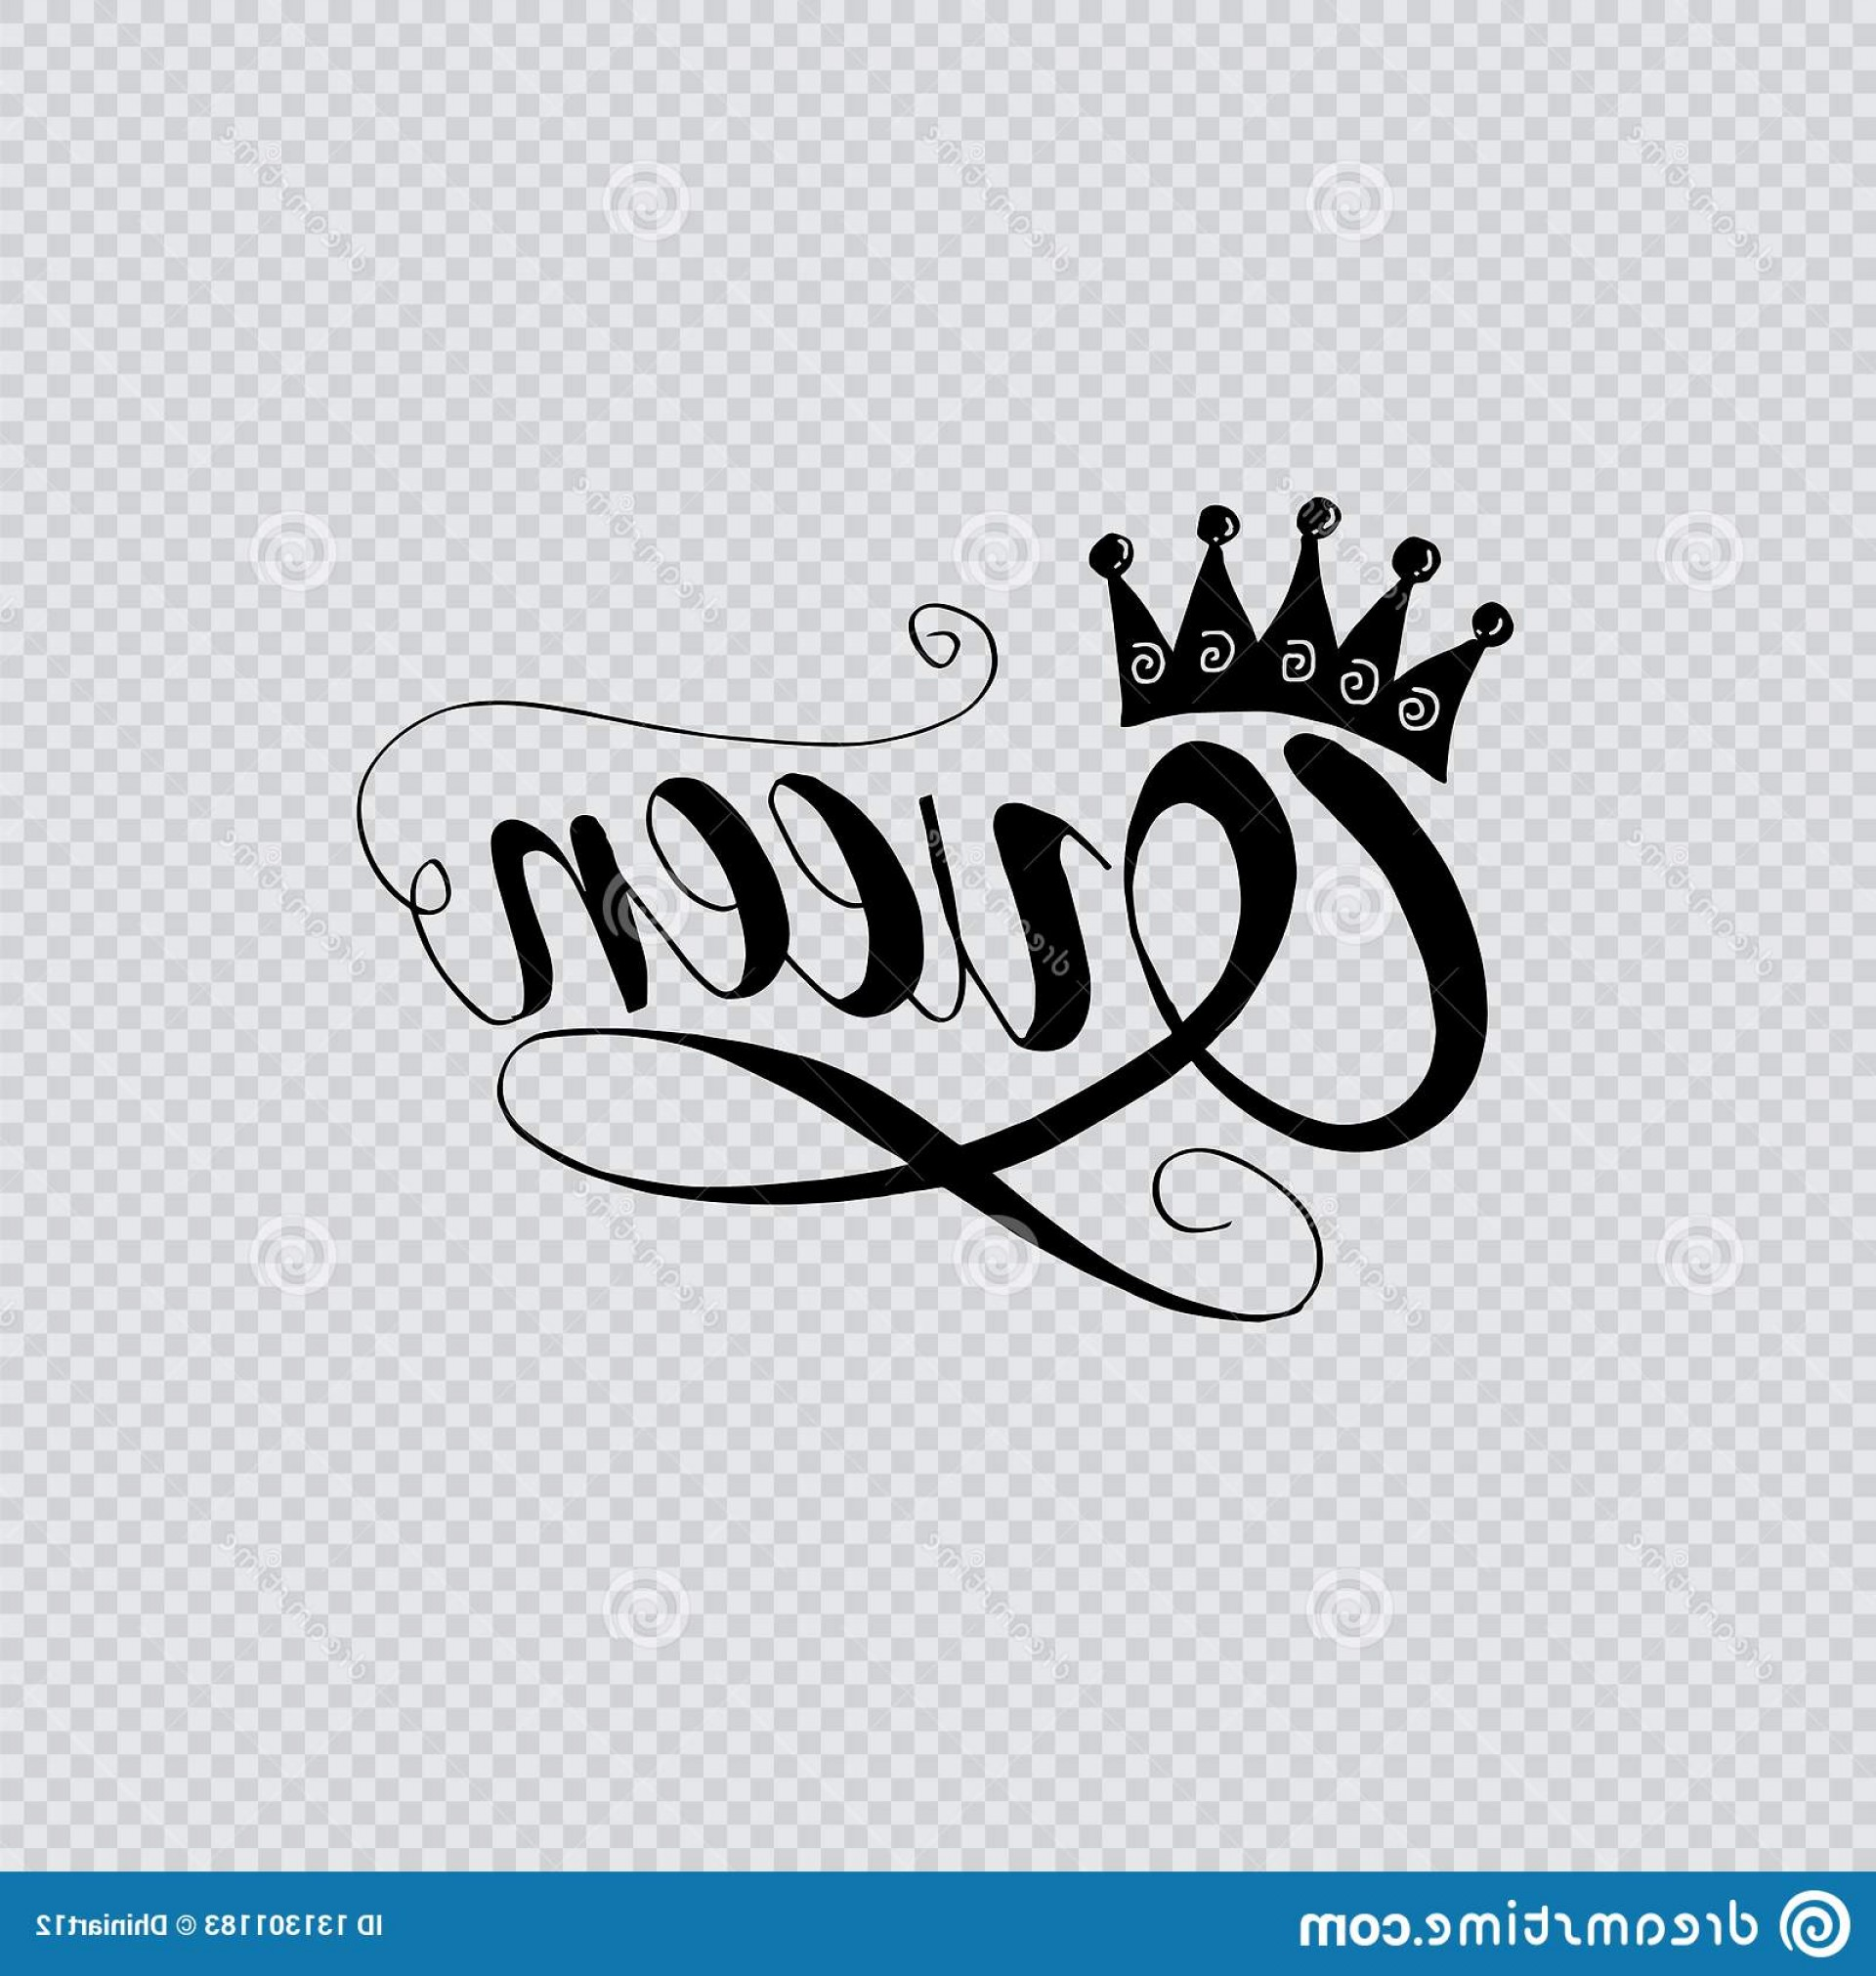 Transparent Queen Crown Vector: Queen Word Crown Hand Lettering Transparent Background Queen Word Crown Image